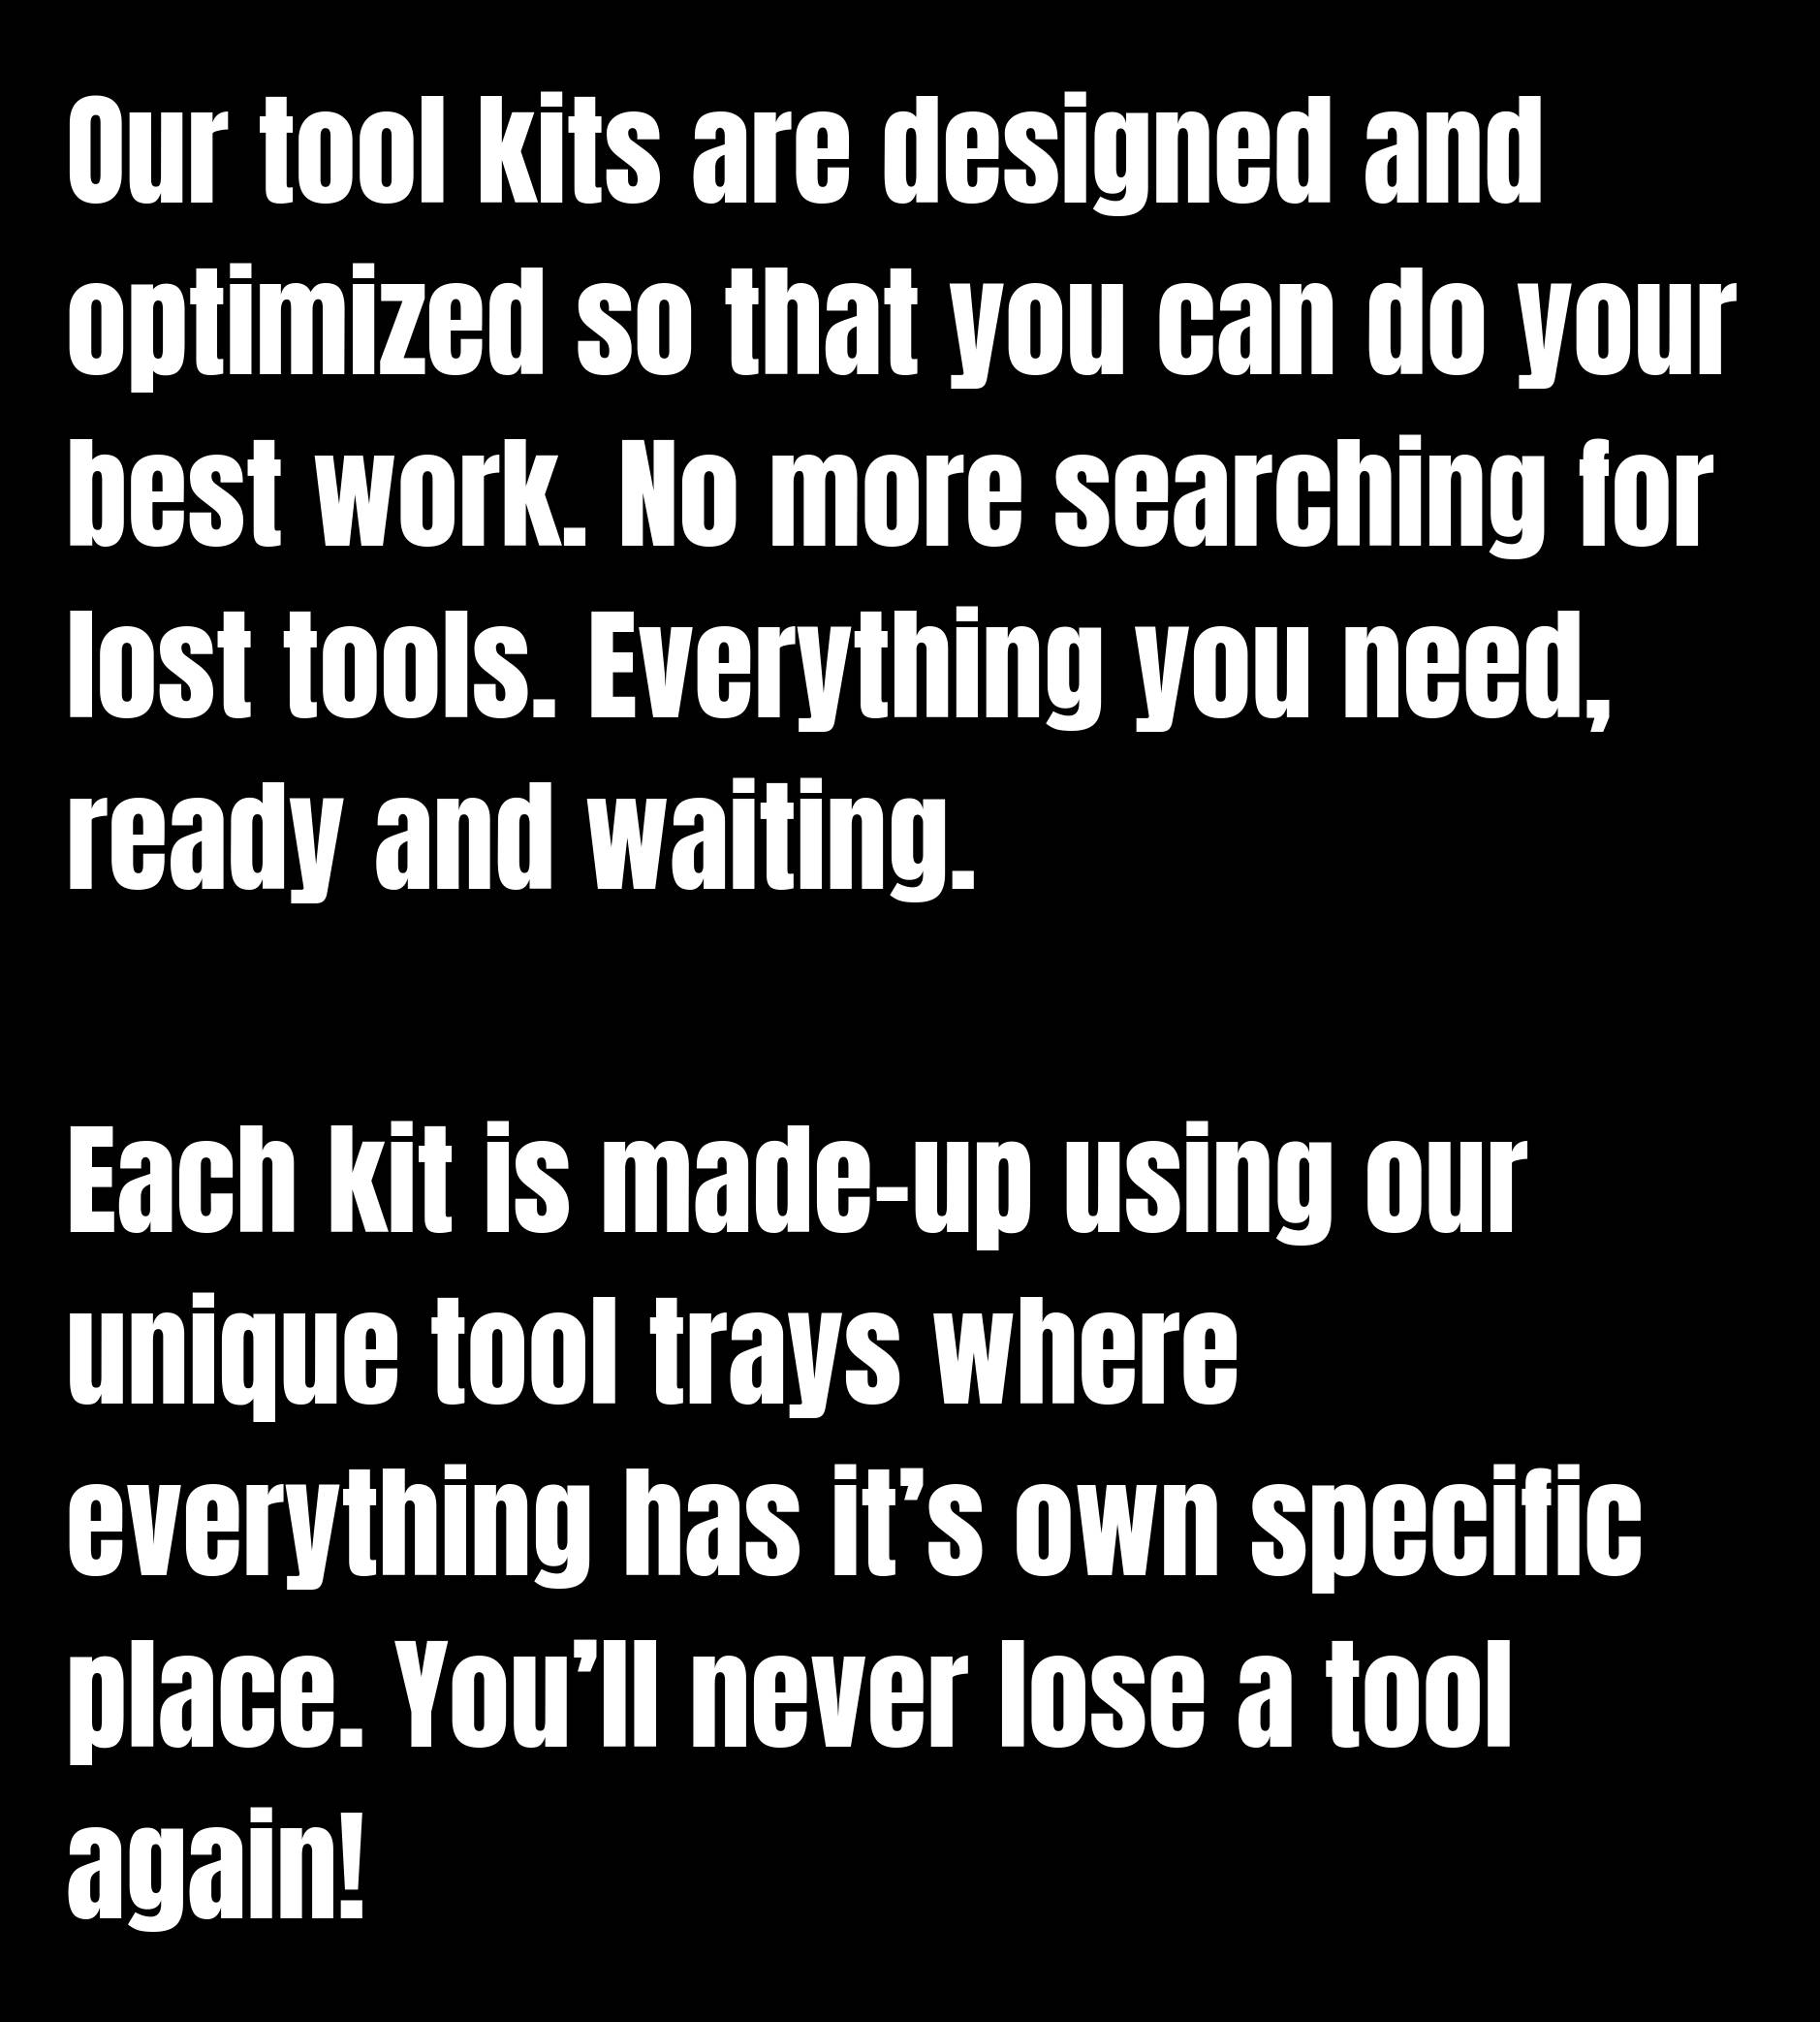 Our tool kits are designed and optimized so that you can do your best work. No more searching for lost tools. Everything you need, ready and waiting. Each kit is made-up using our unique tool trays where everything has it's own specific place. You'll never lose a tool again!